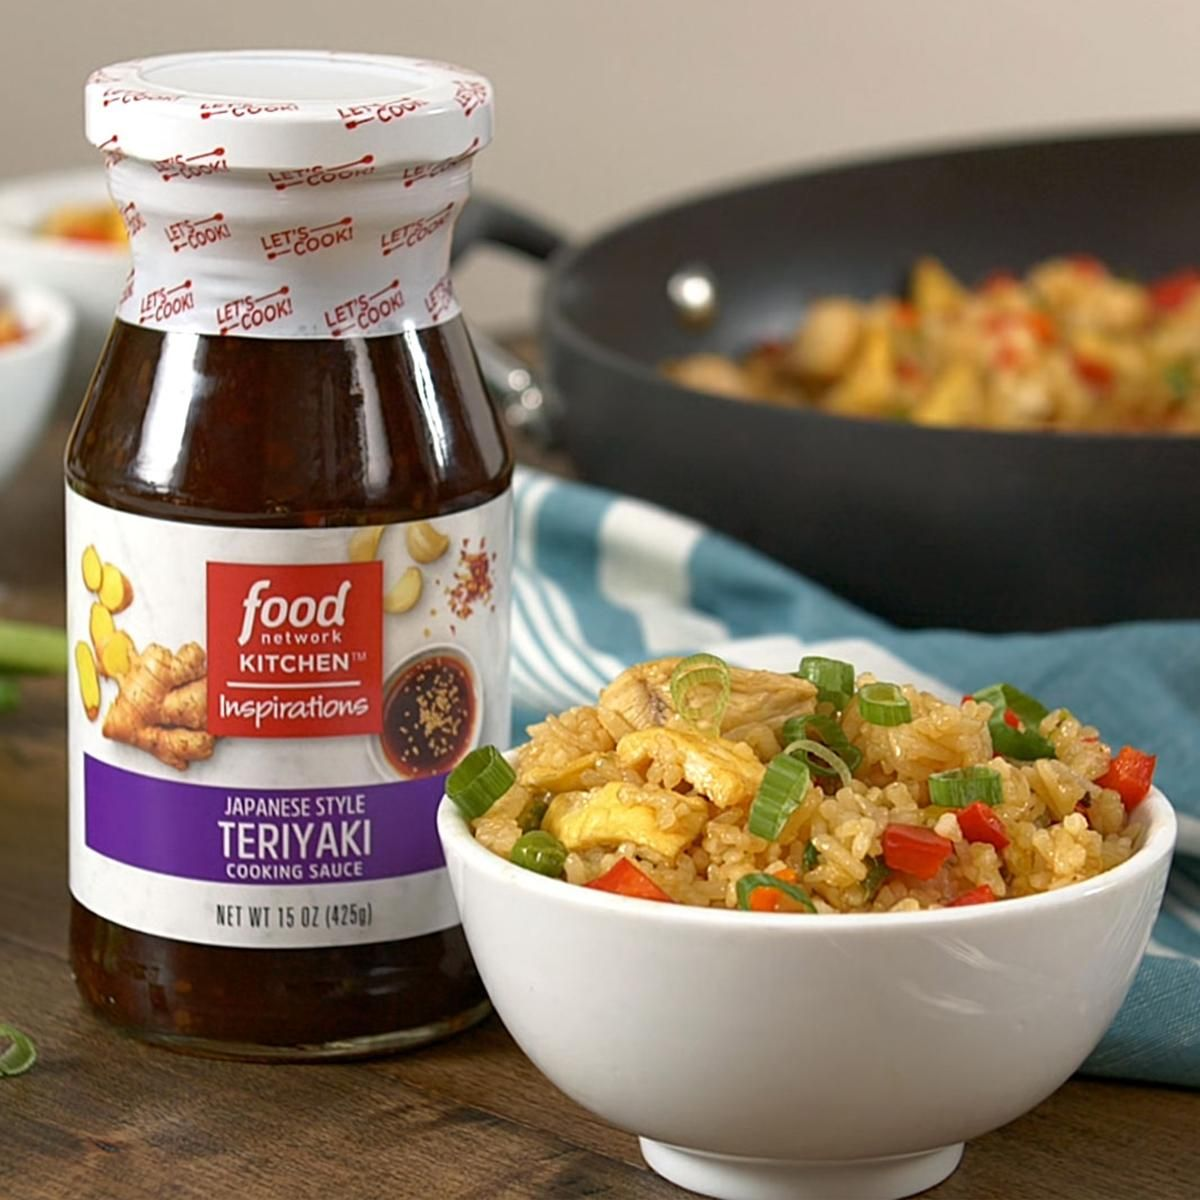 Teriyaki sauce from food network kitchen inspirations is the key to teriyaki sauce from food network kitchen inspirations is the key to perfect fried rice forumfinder Choice Image